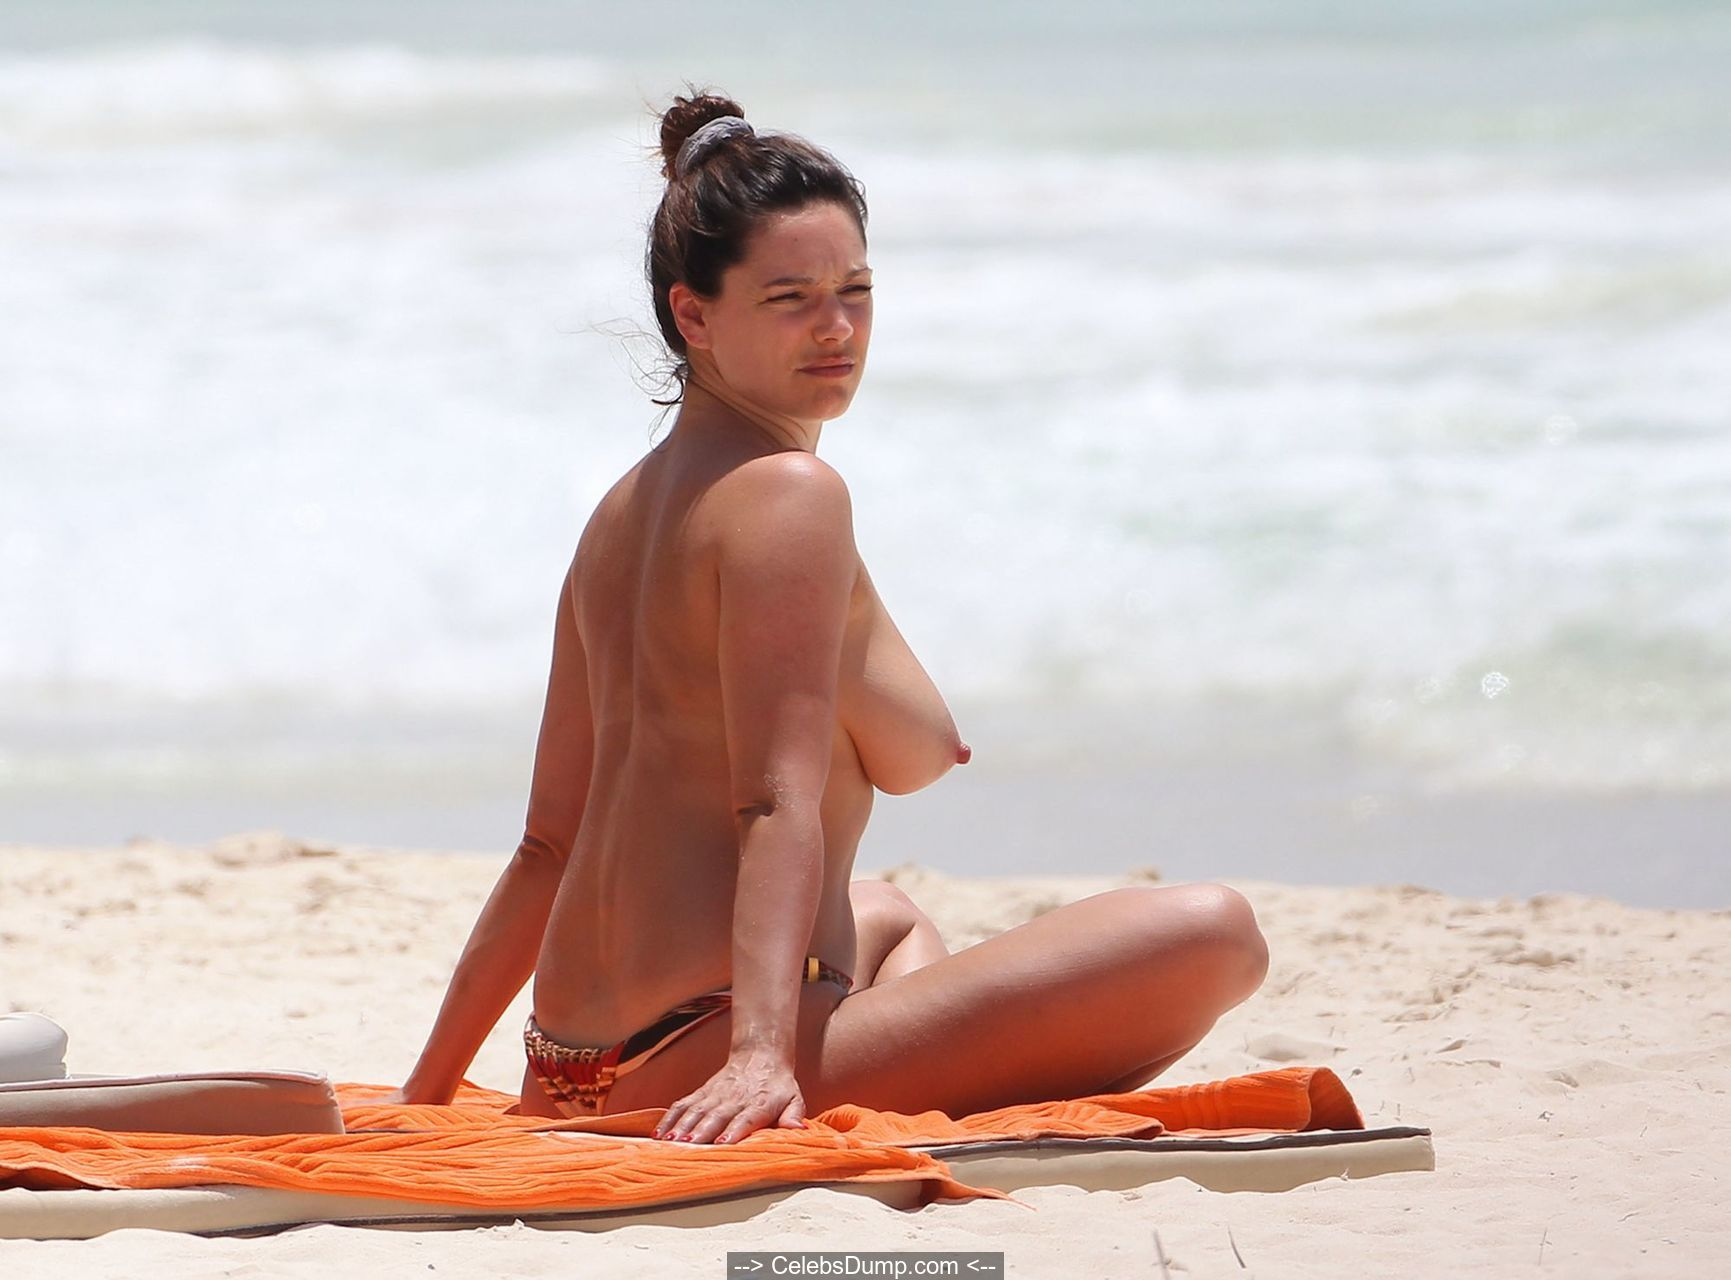 The best nudist resorts in mexico to let it all hang out